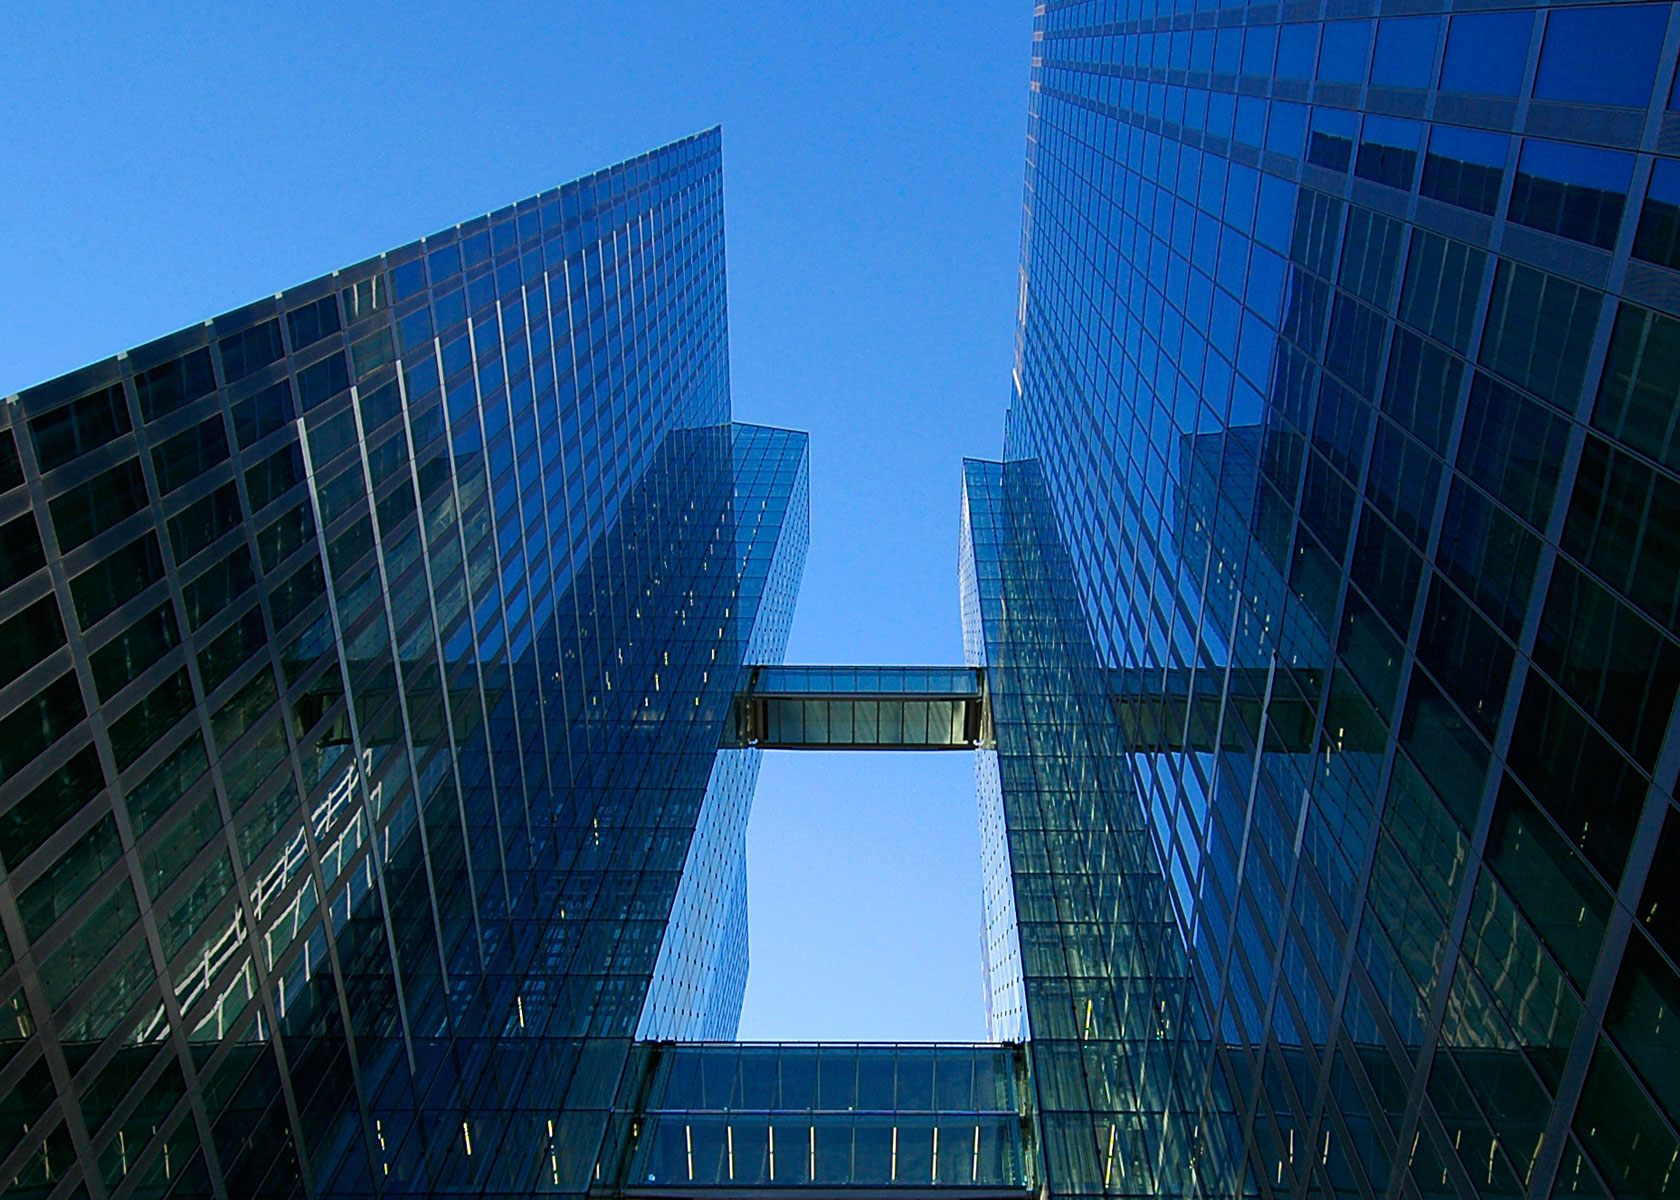 Architekturfotos: Highlight Towers, München